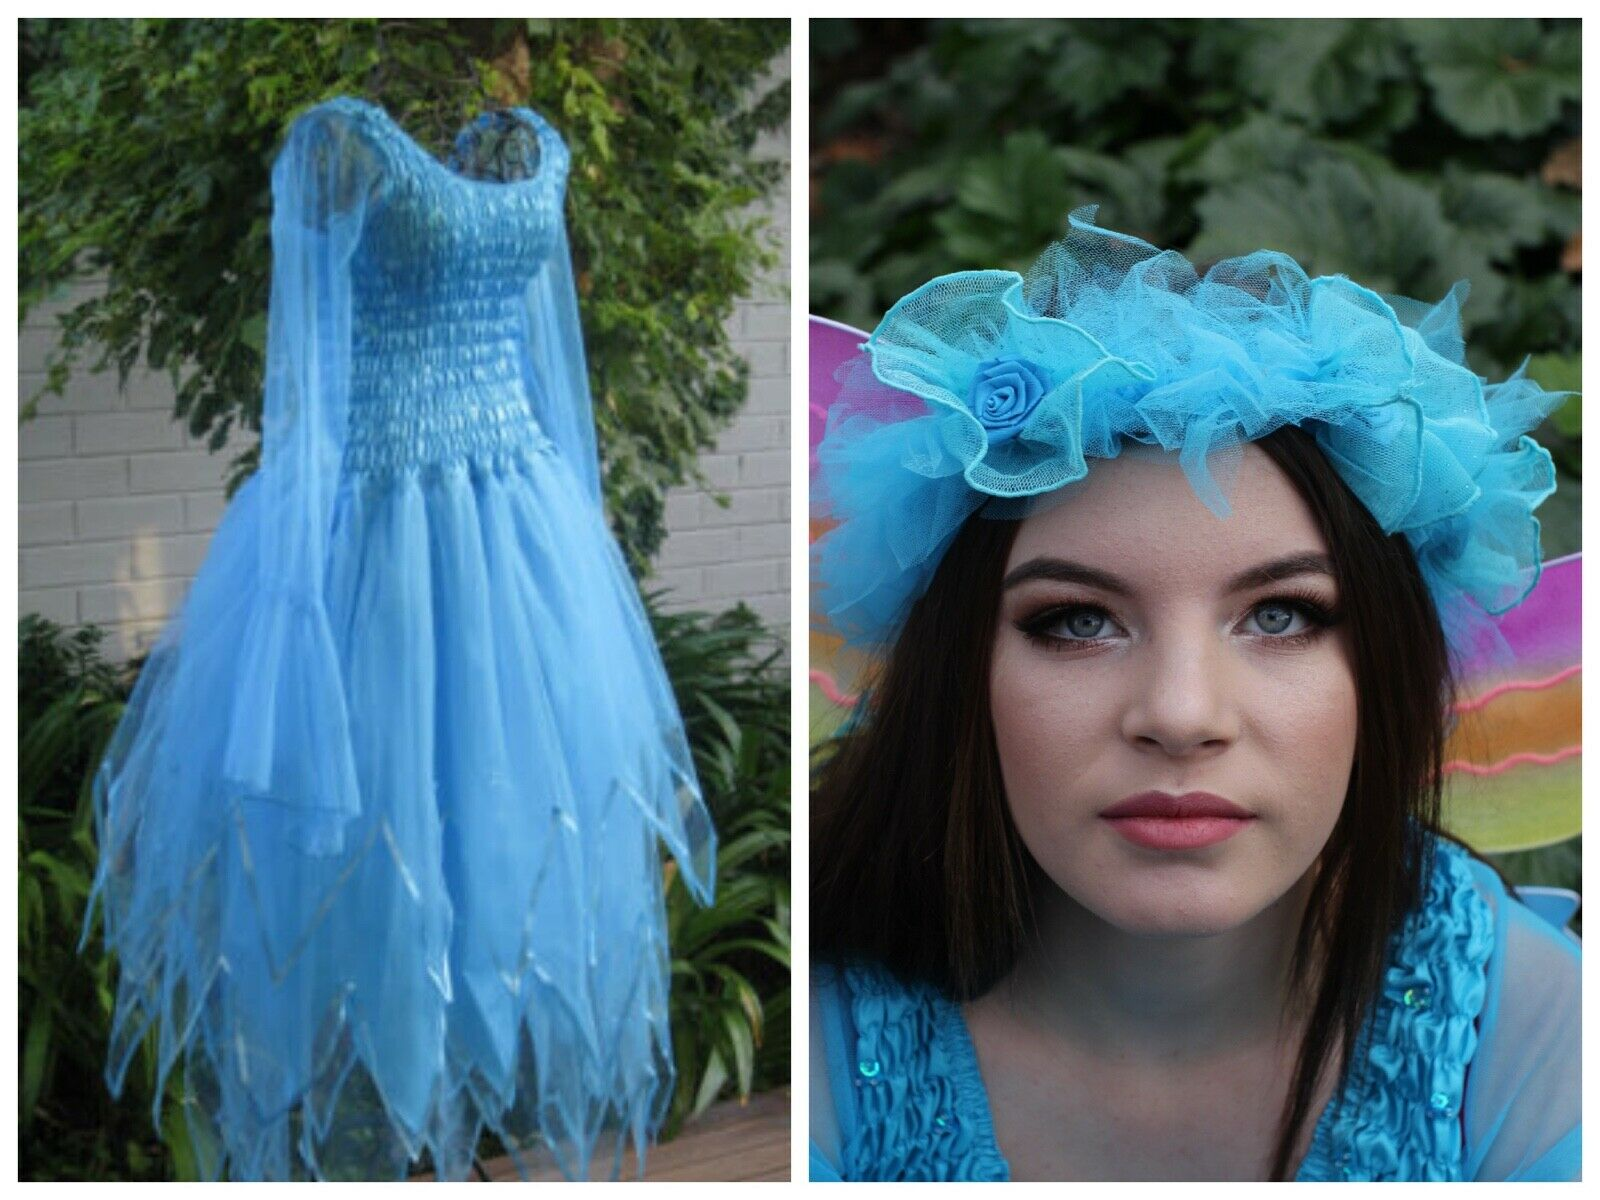 Woman/'s  Fairytale Party Halloween Costume  Dress Wings /& Tulle Halo ~Theatre